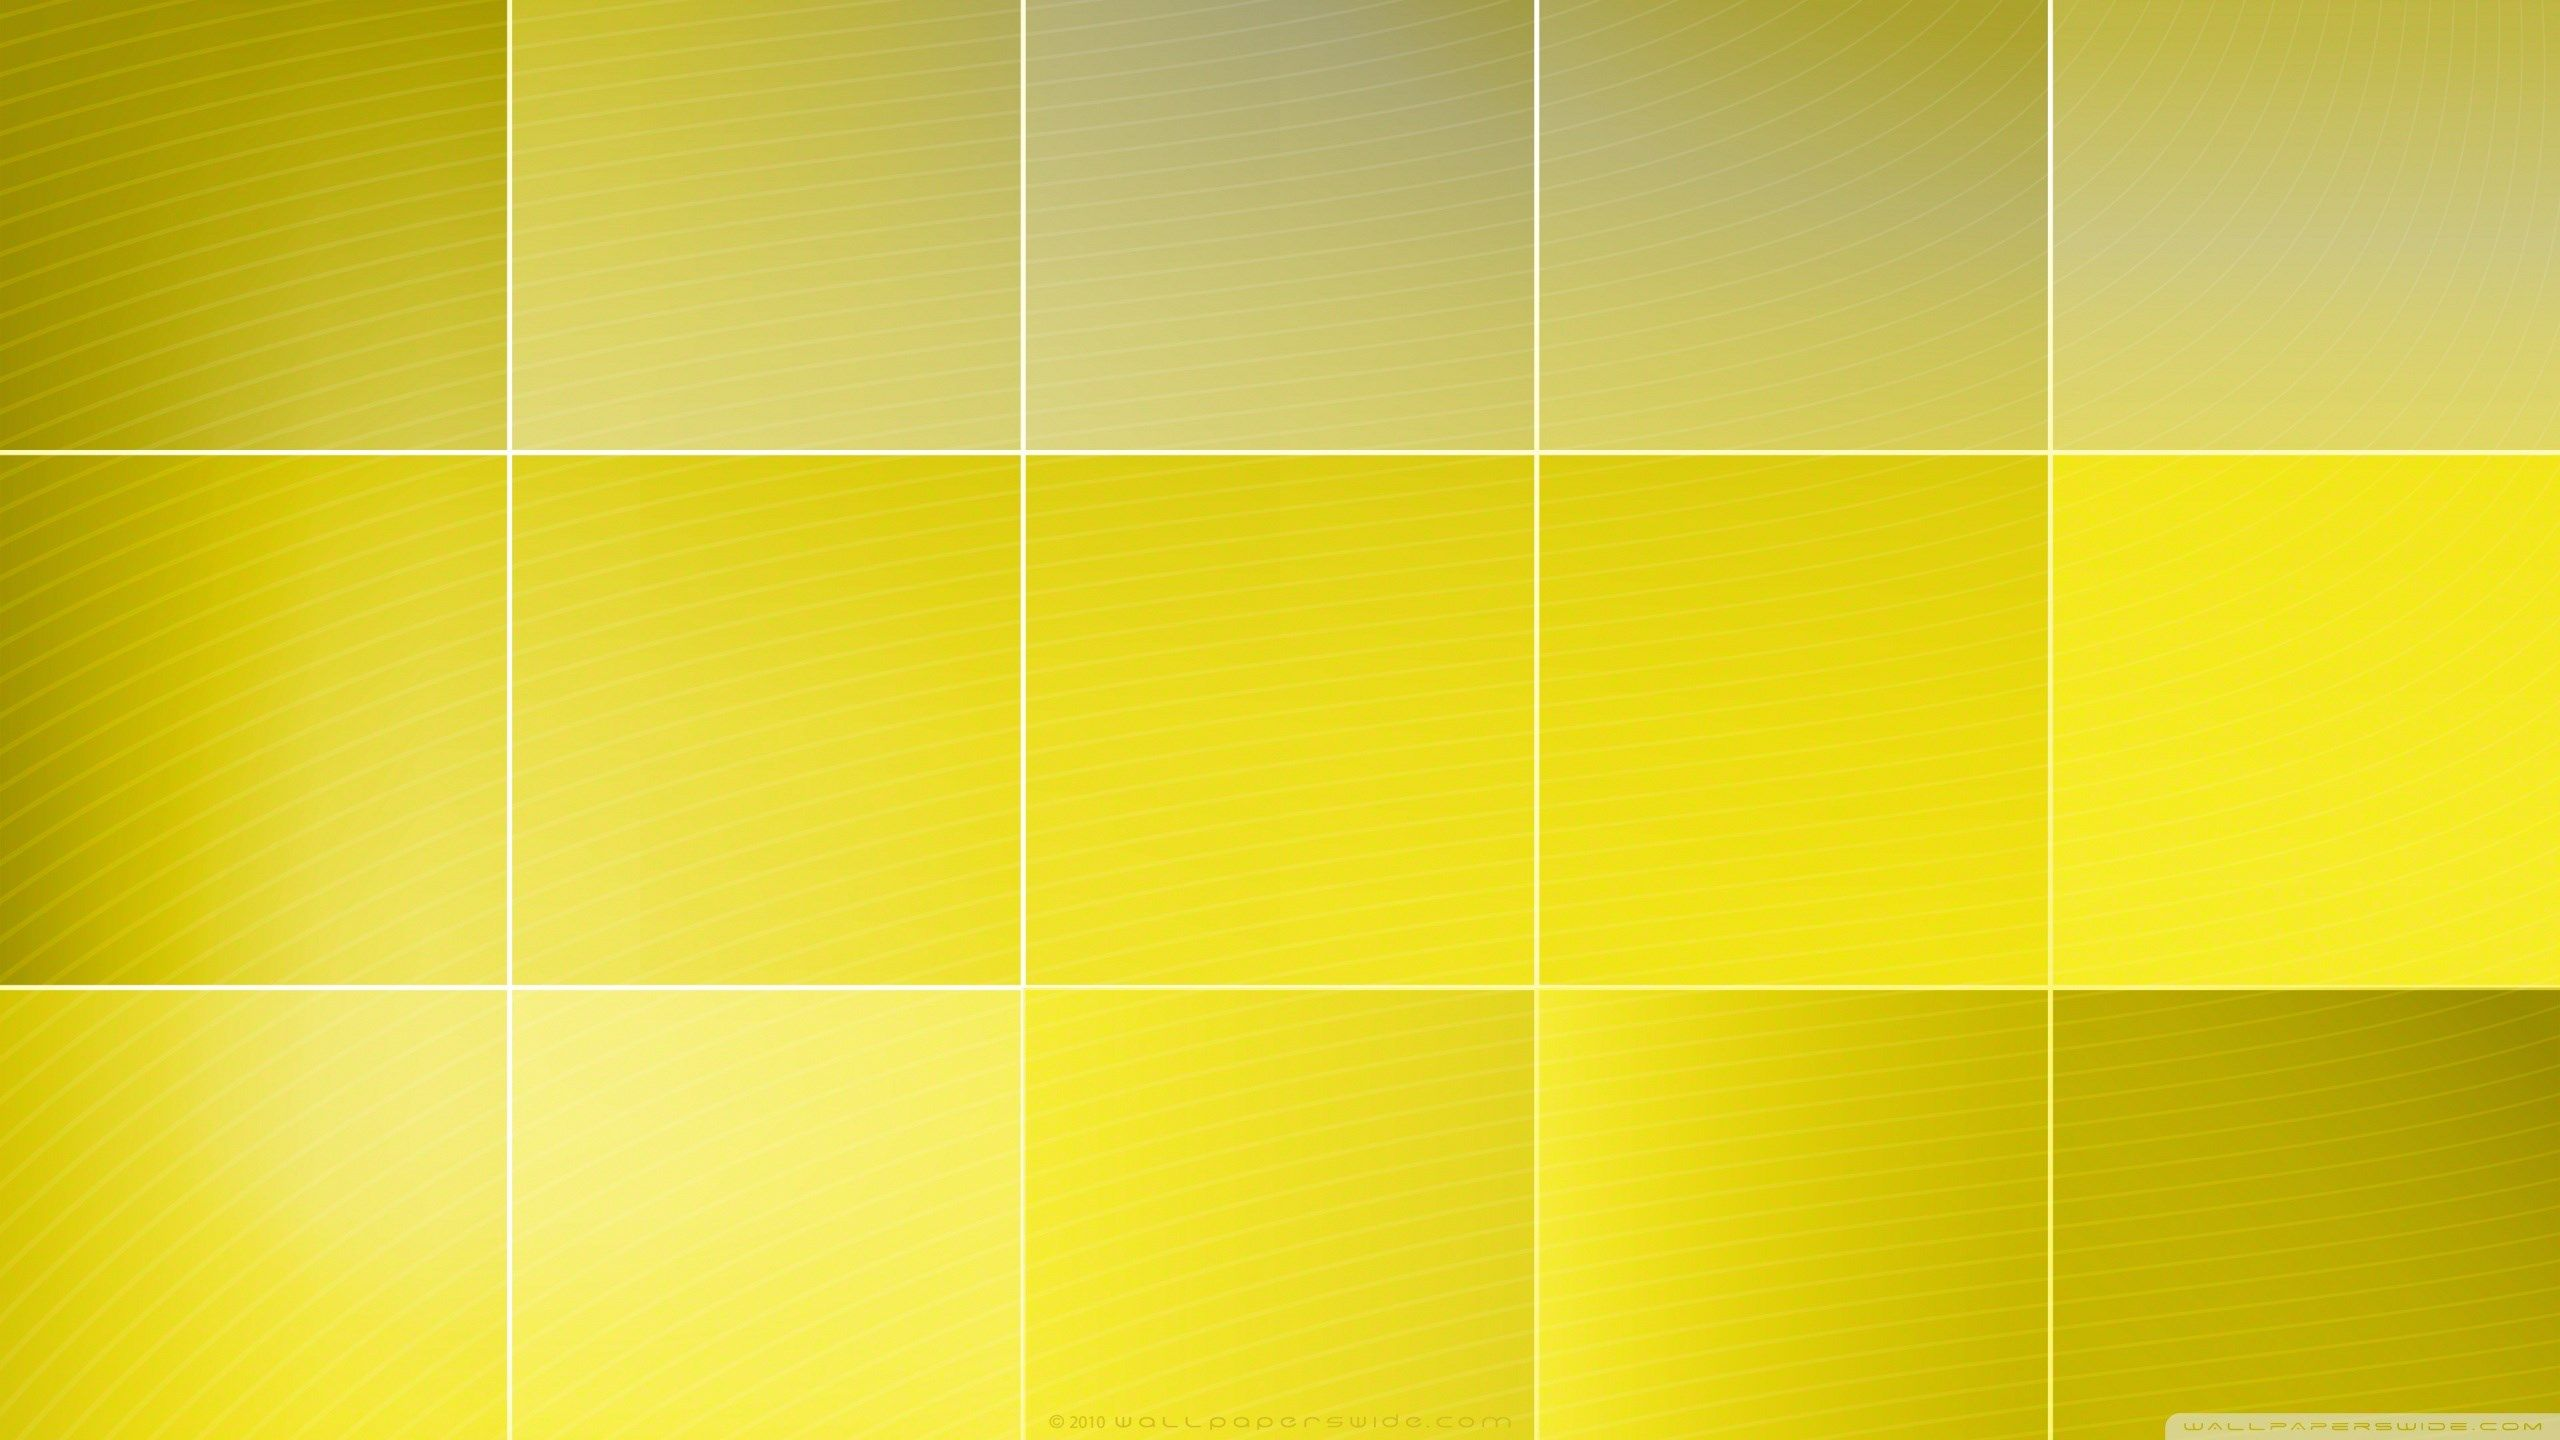 yellow wallpaper sparknotes summary » Wallppapers Gallery